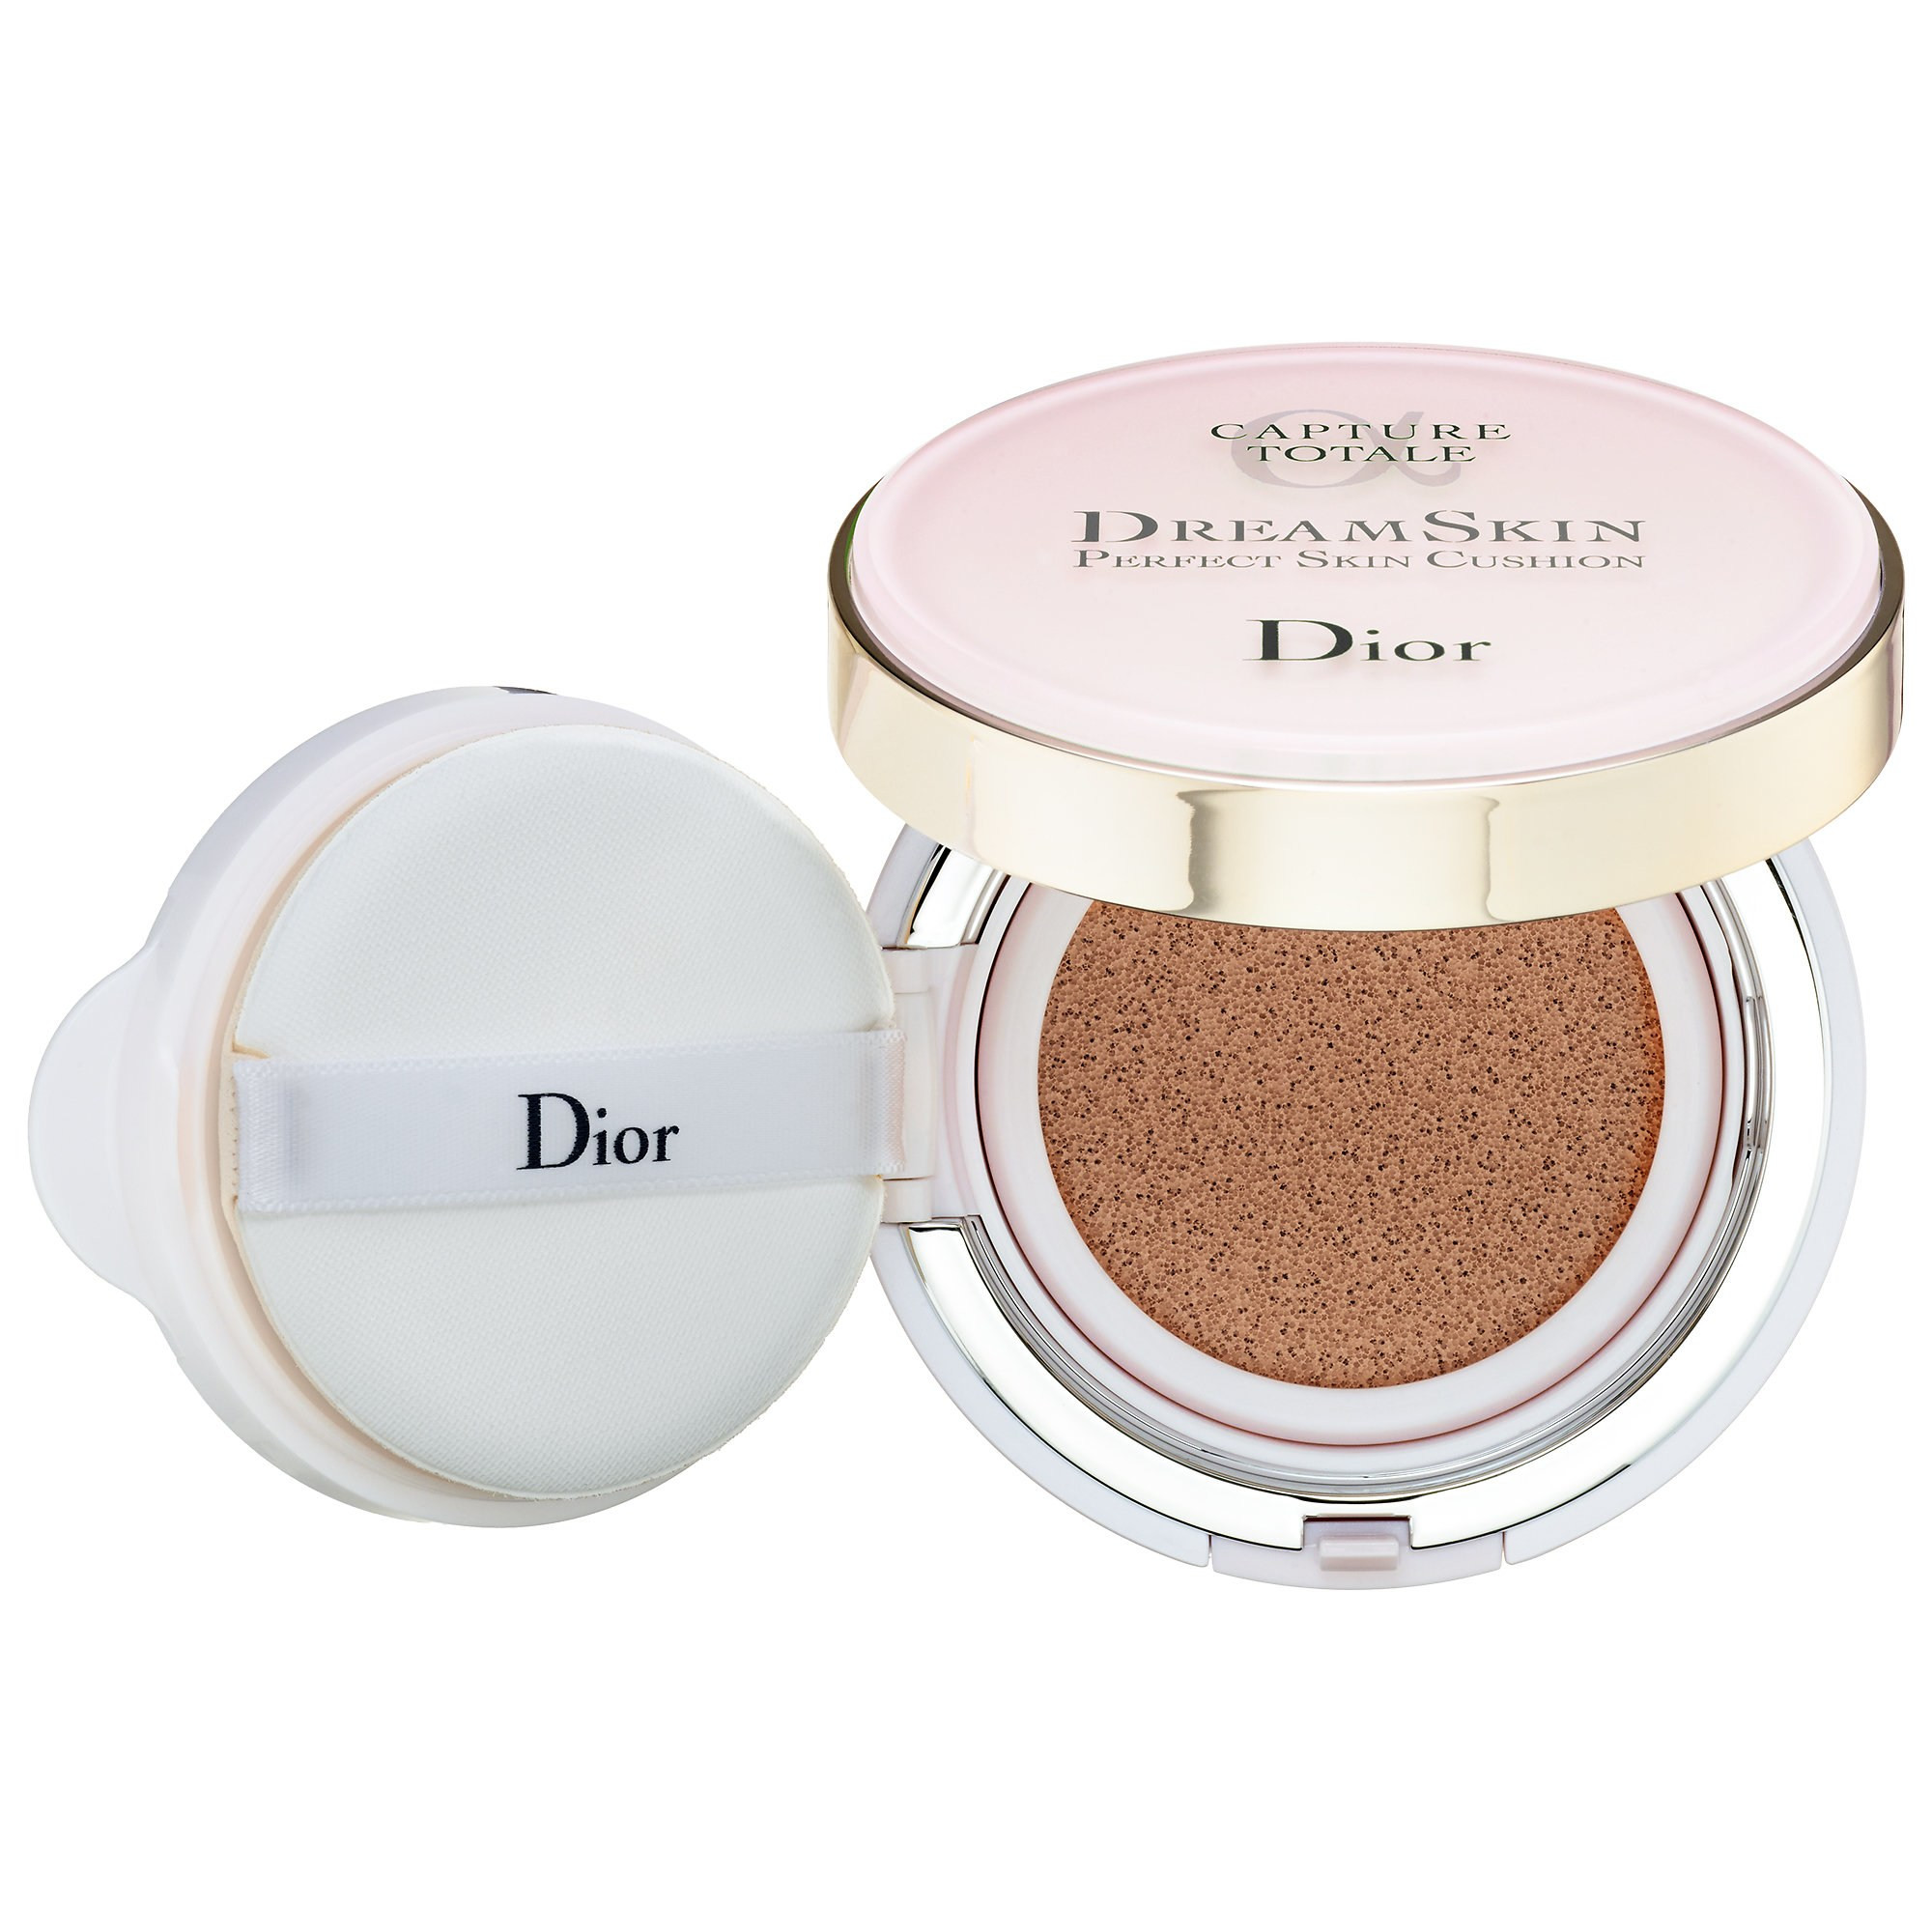 Dior Capture Totale Dreamskin Perfect Skin Cushion (1925 грн)